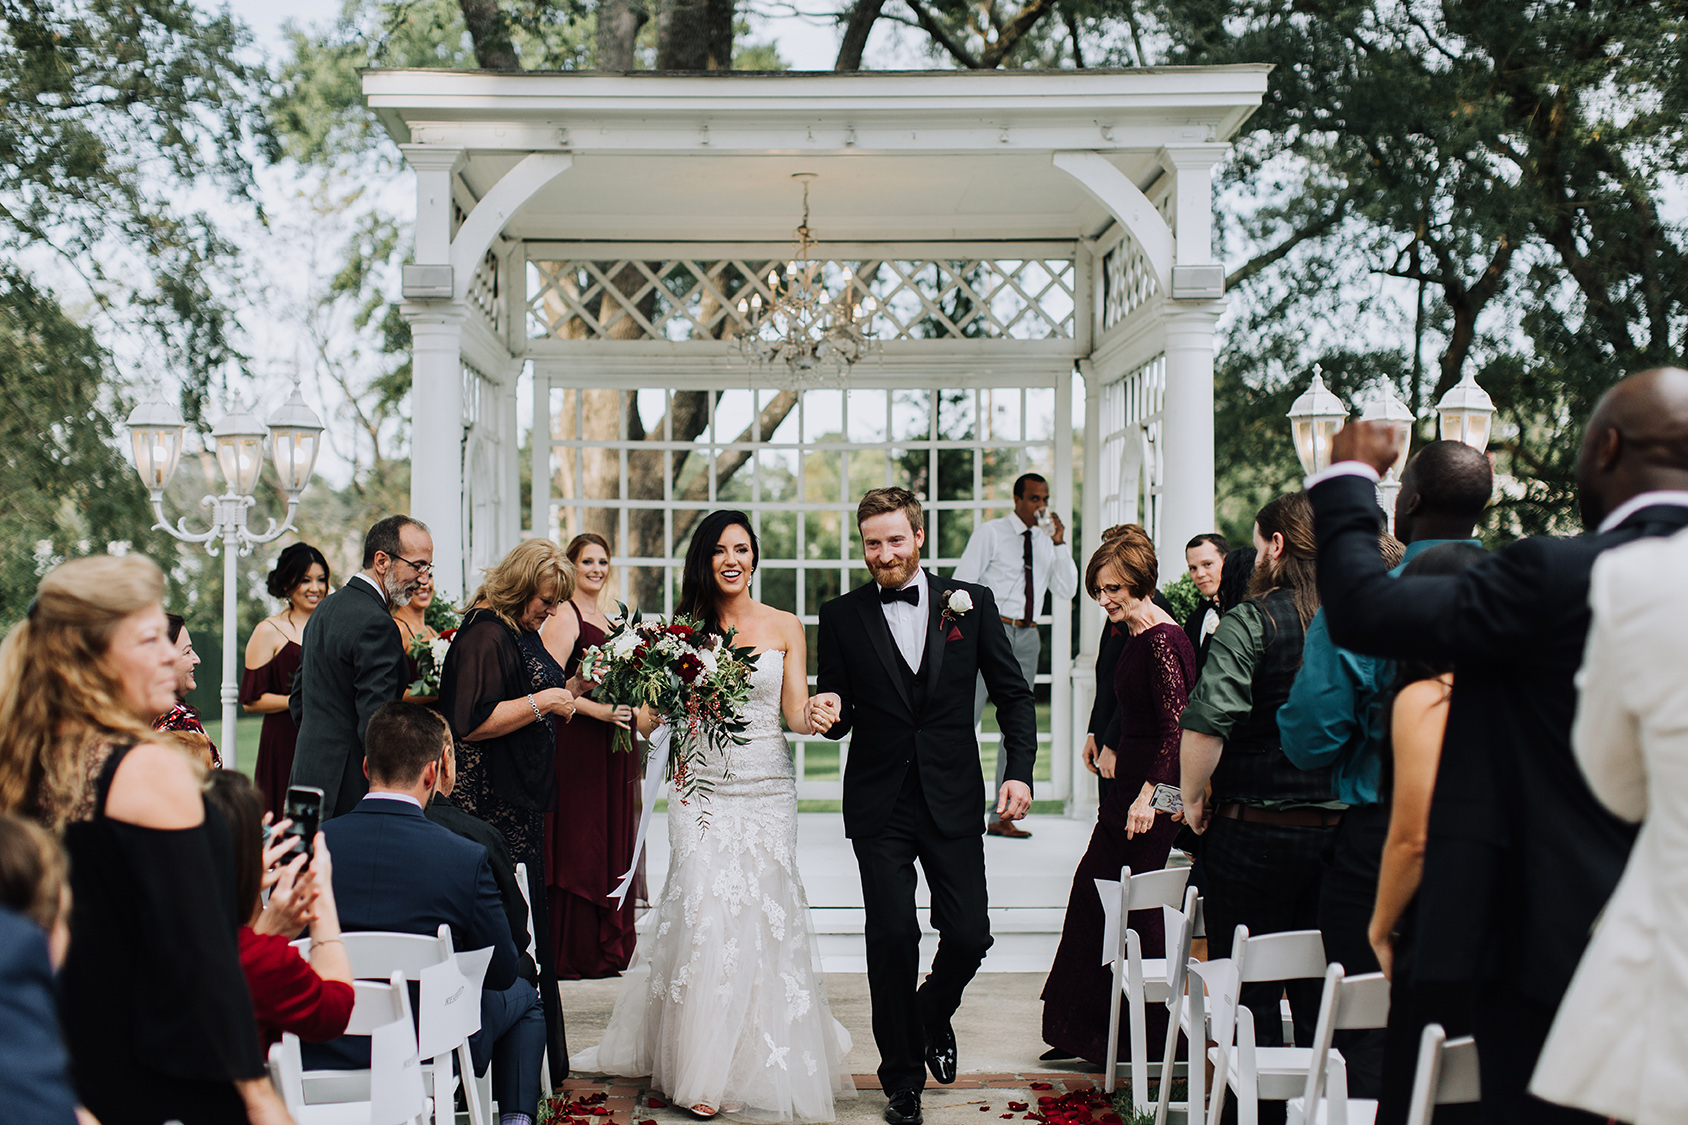 gazebo, outdoor ceremony setup, garden wedding, wedding photography, newlyweds